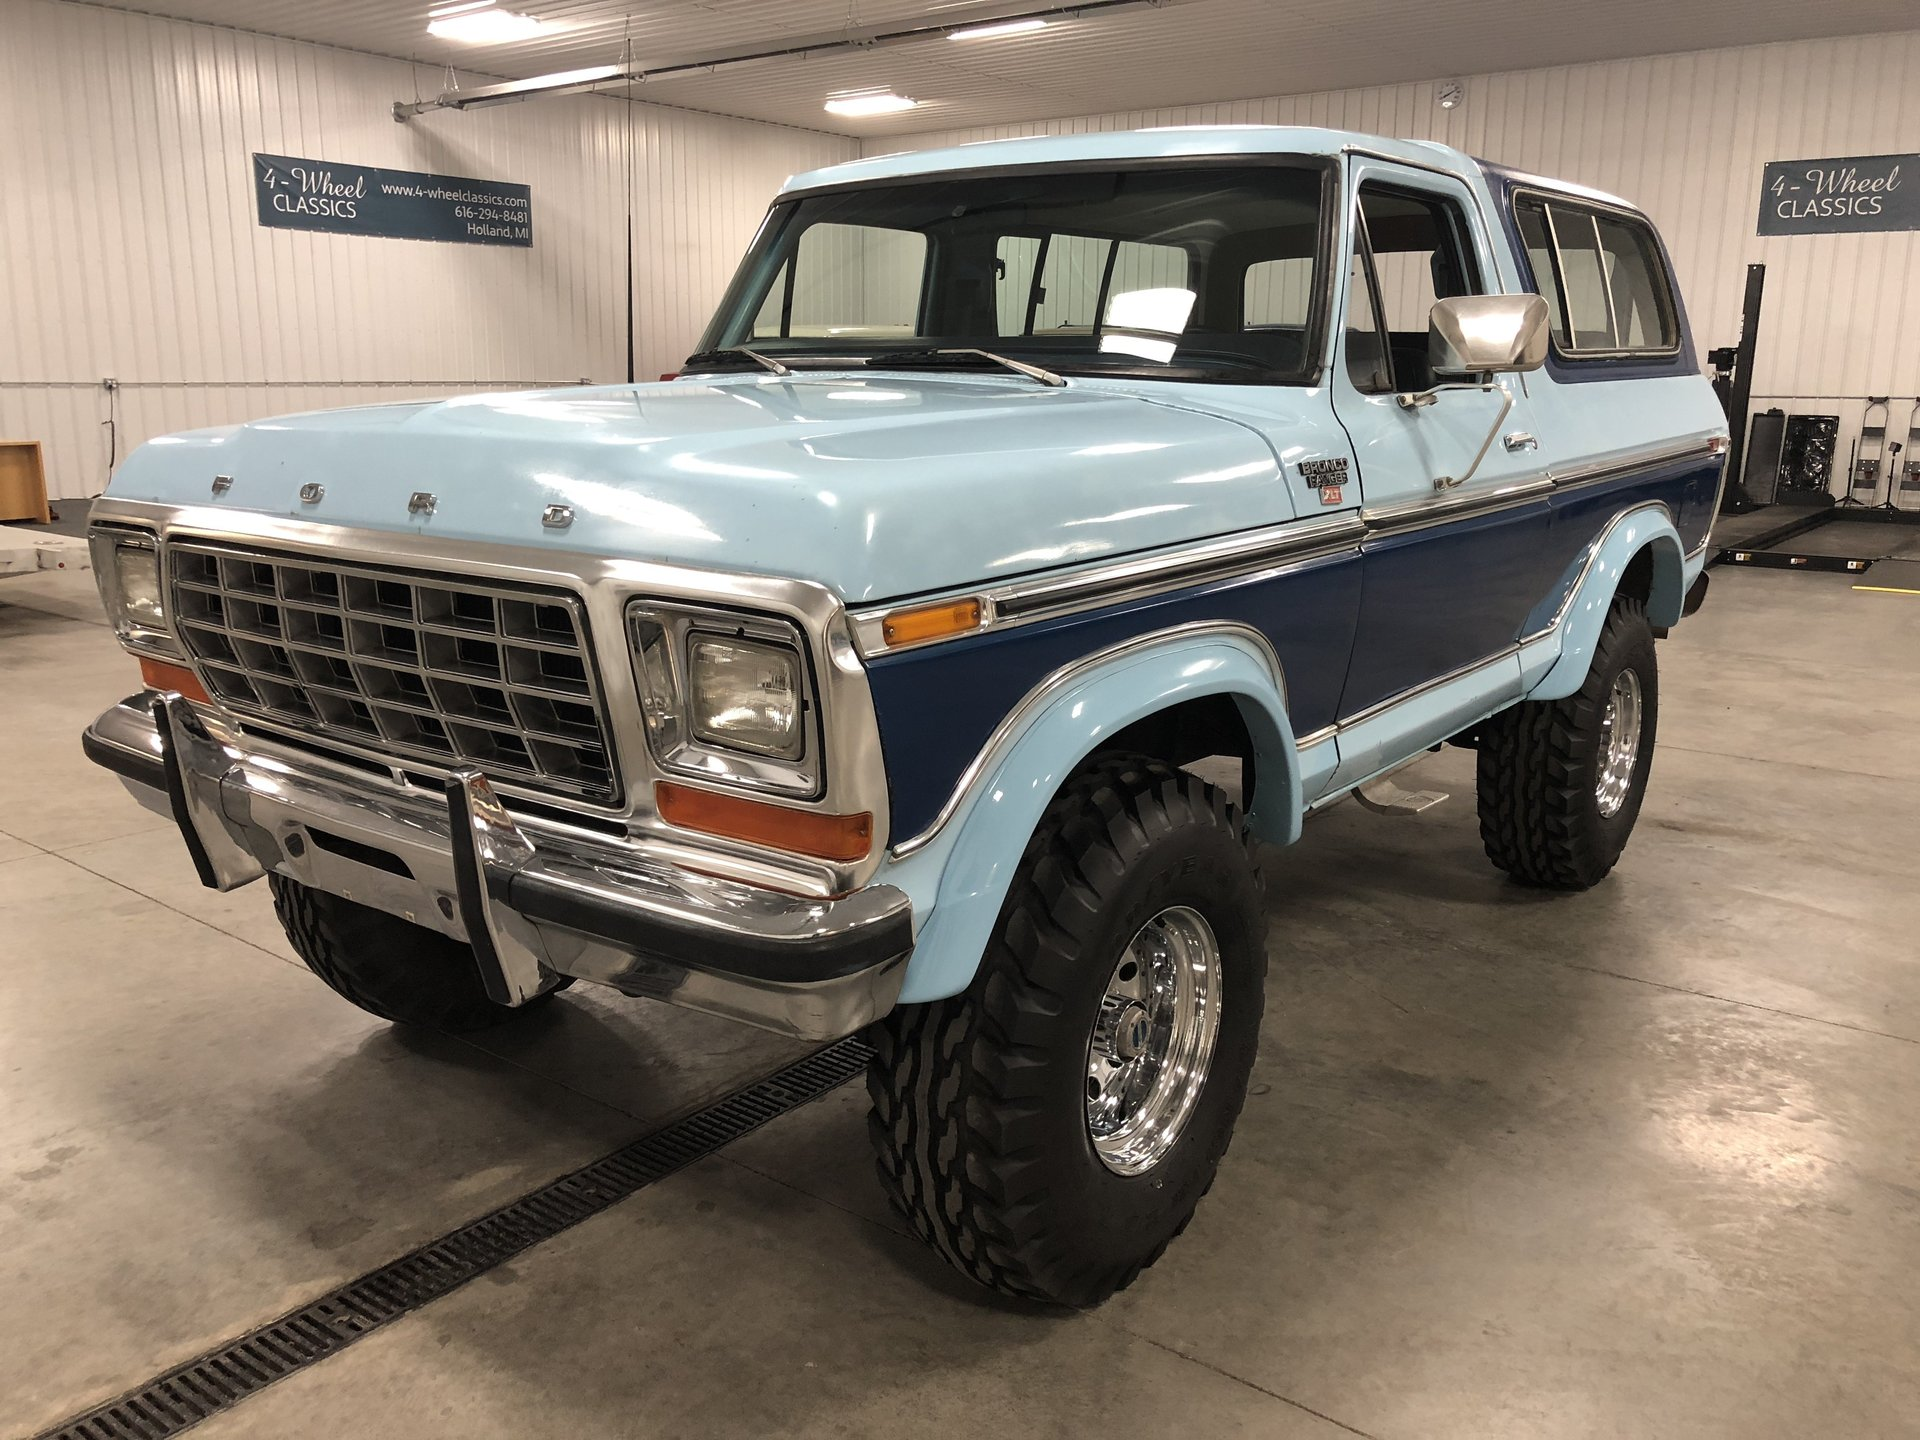 1979 Ford Bronco For Sale #77620